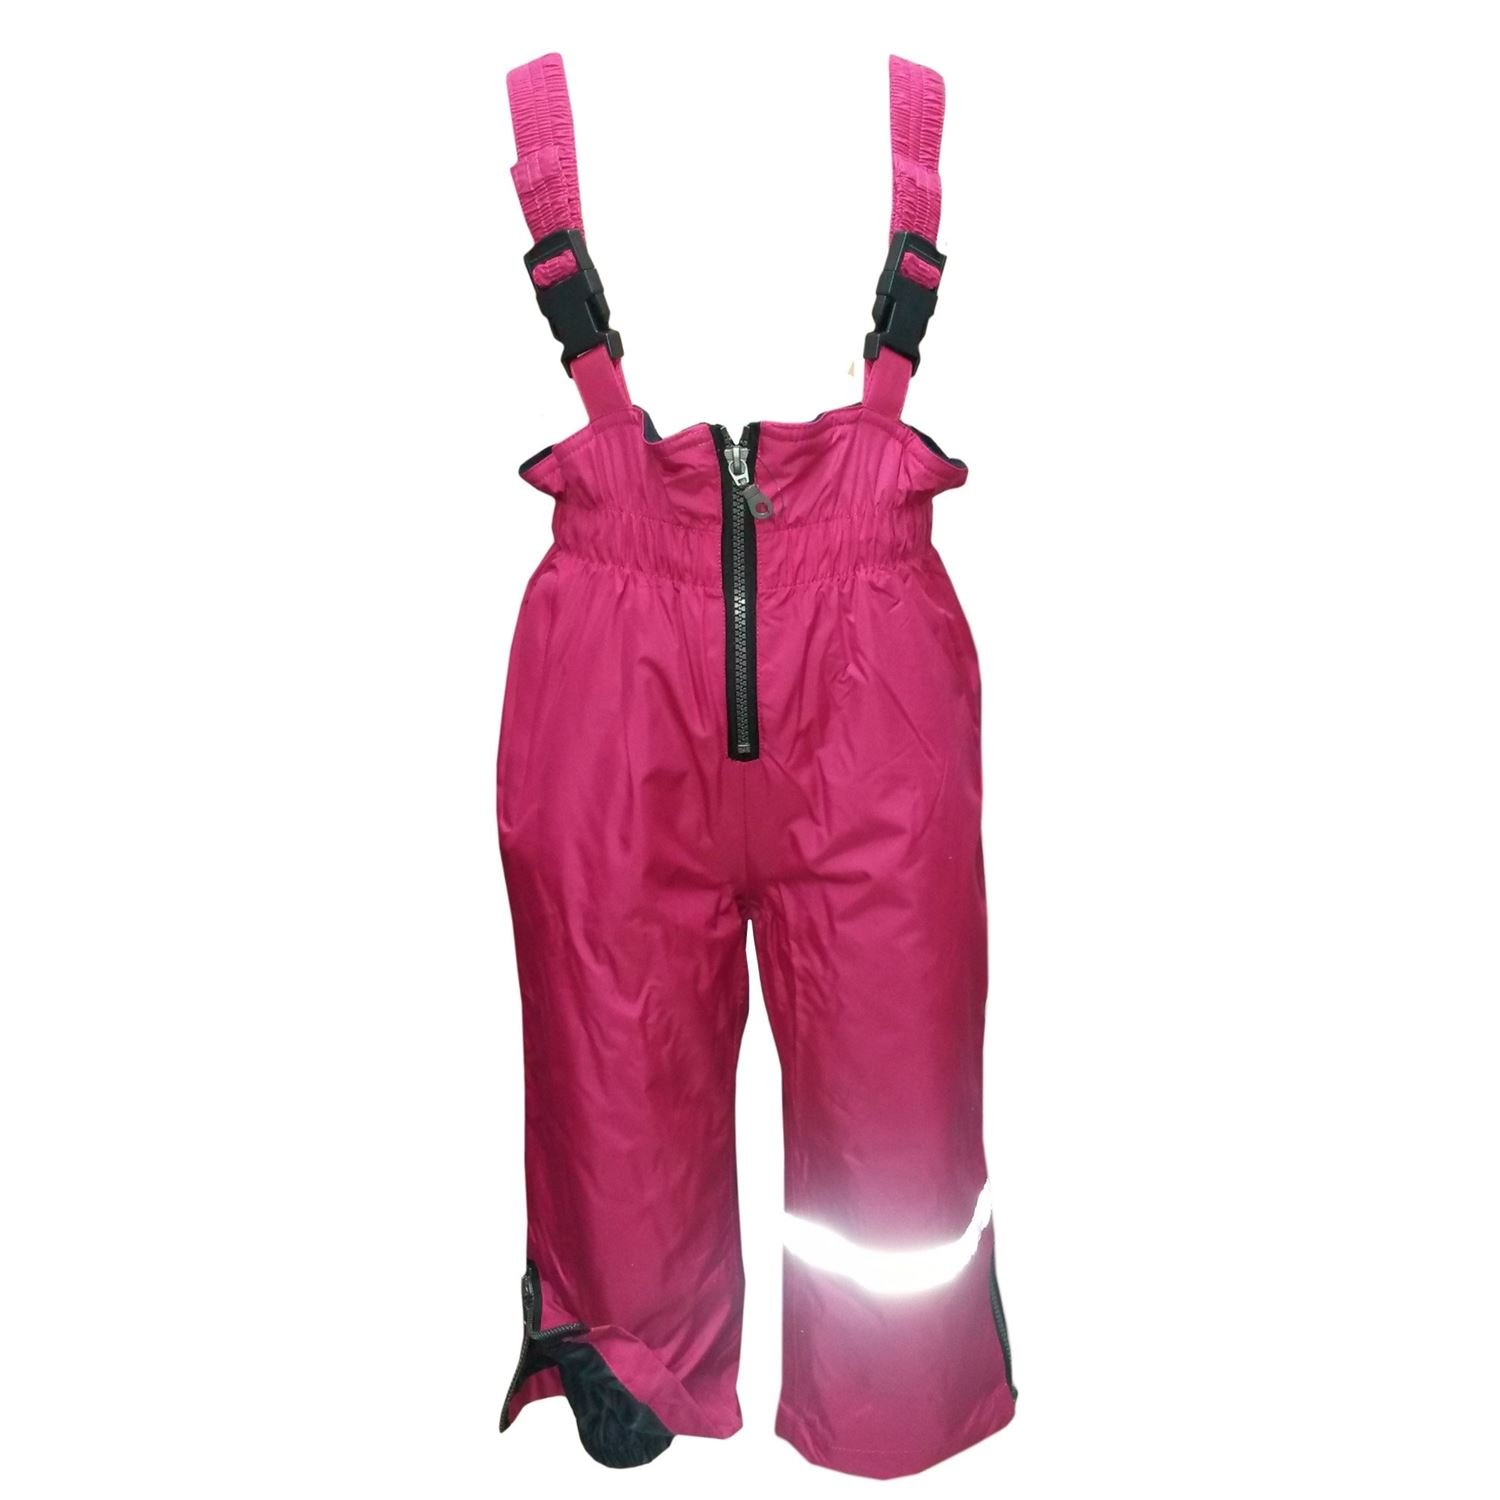 Outburst - Baby girls rain pants outdoor trousers ski pants overalls fleece lining waterproof, pink